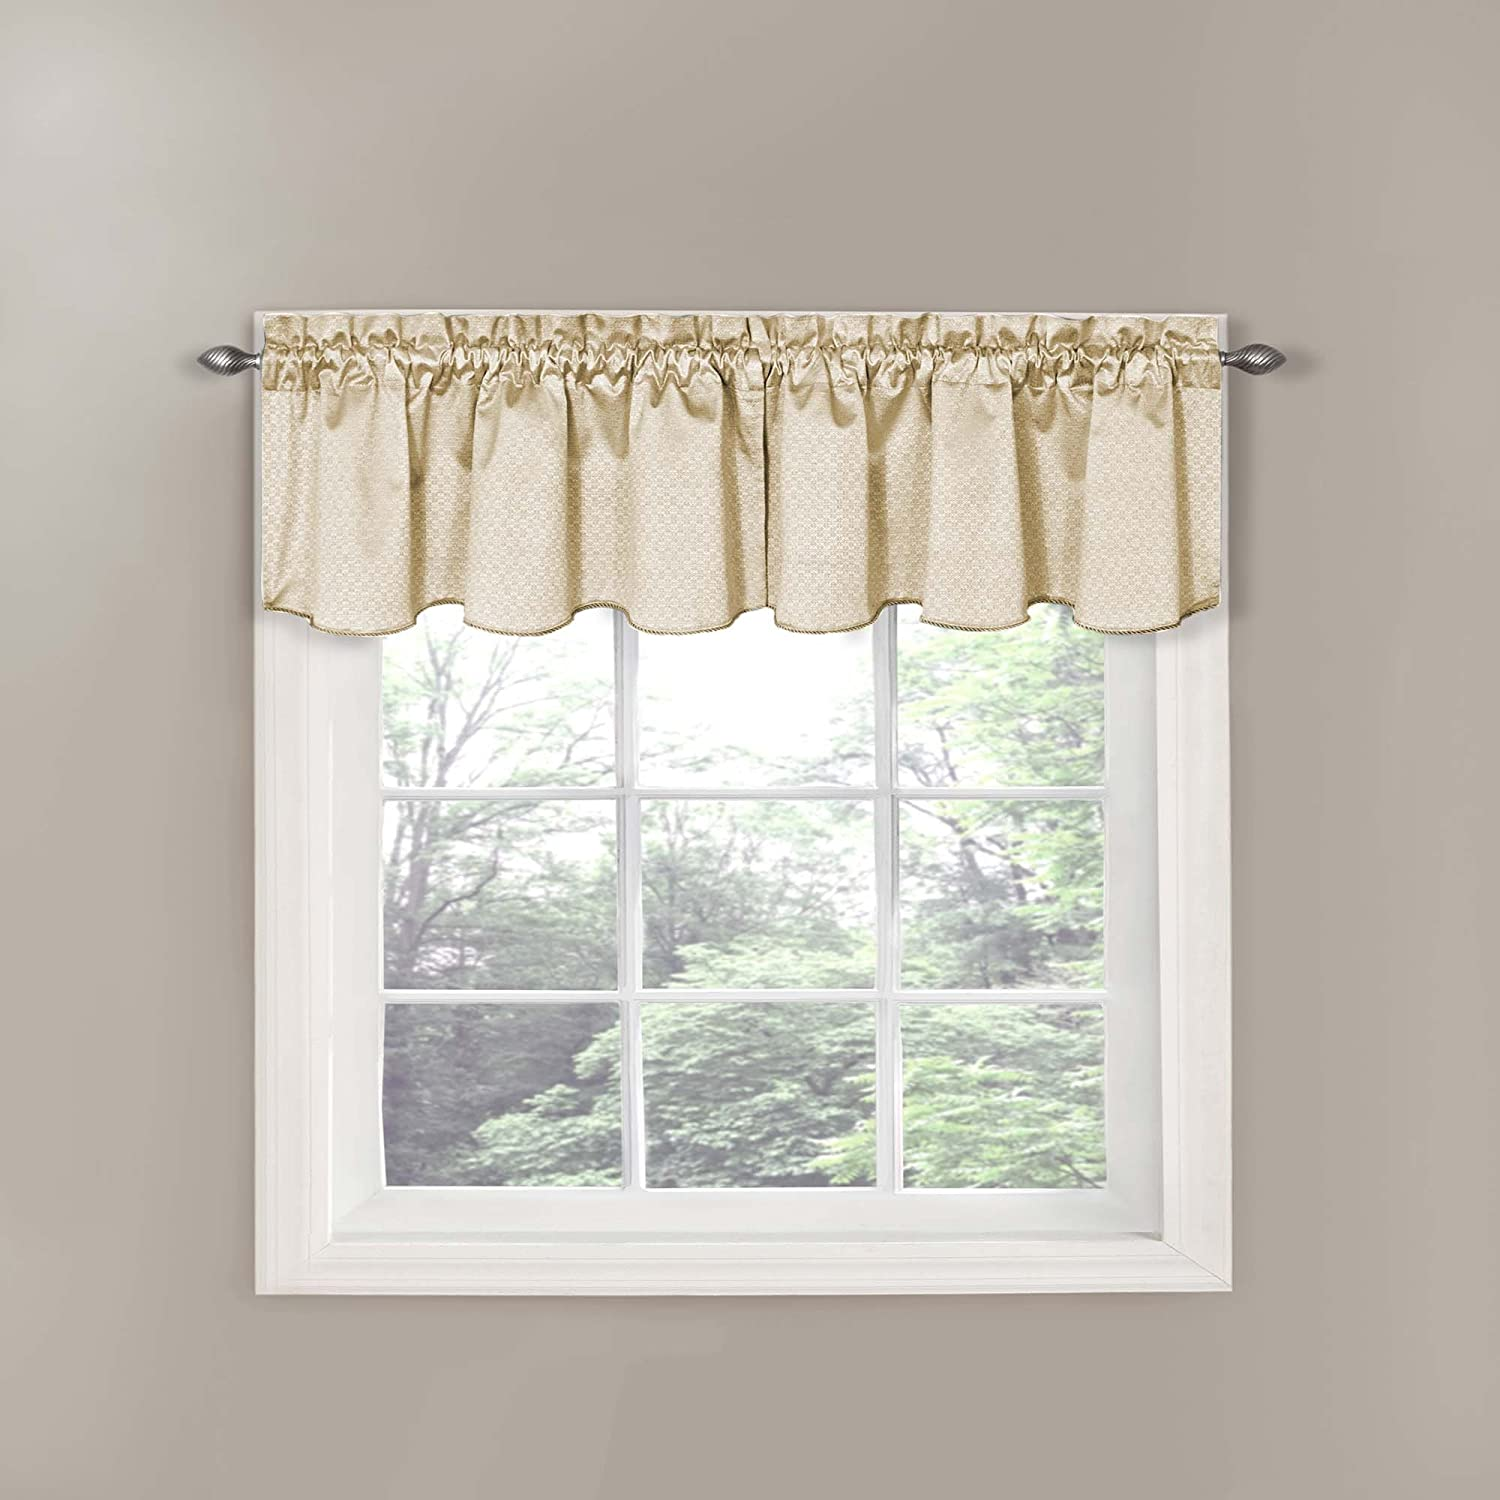 door drapes with curtain european swag matching majesty index beige sheer ivory blockout bedroom creamy pelmet drape amber curtains valance